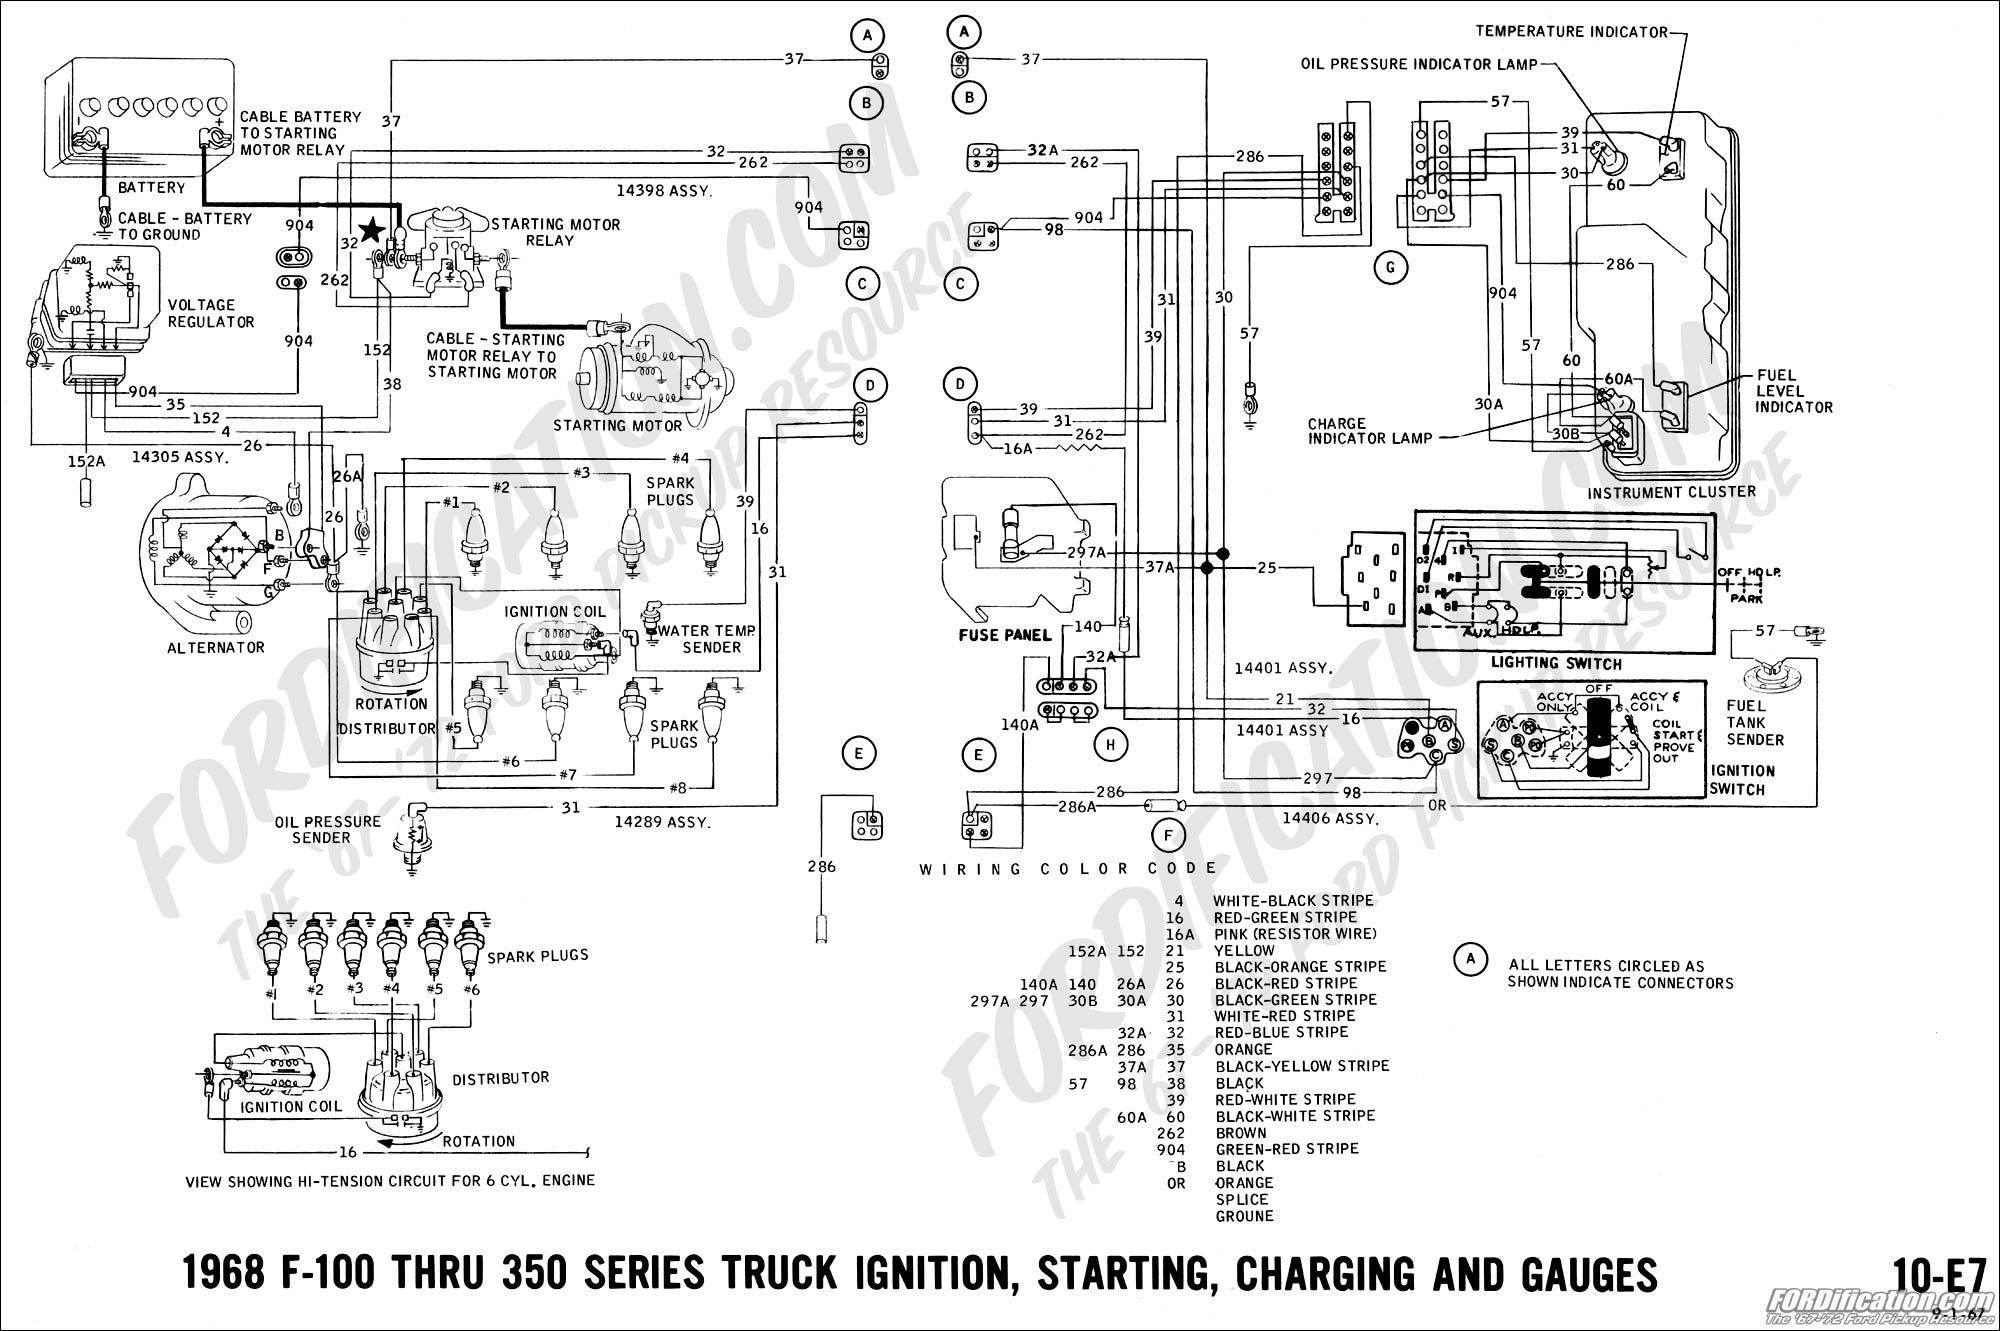 68 09 ford truck technical drawings and schematics section h wiring 1999 F150 Radio Wiring Diagram at mifinder.co